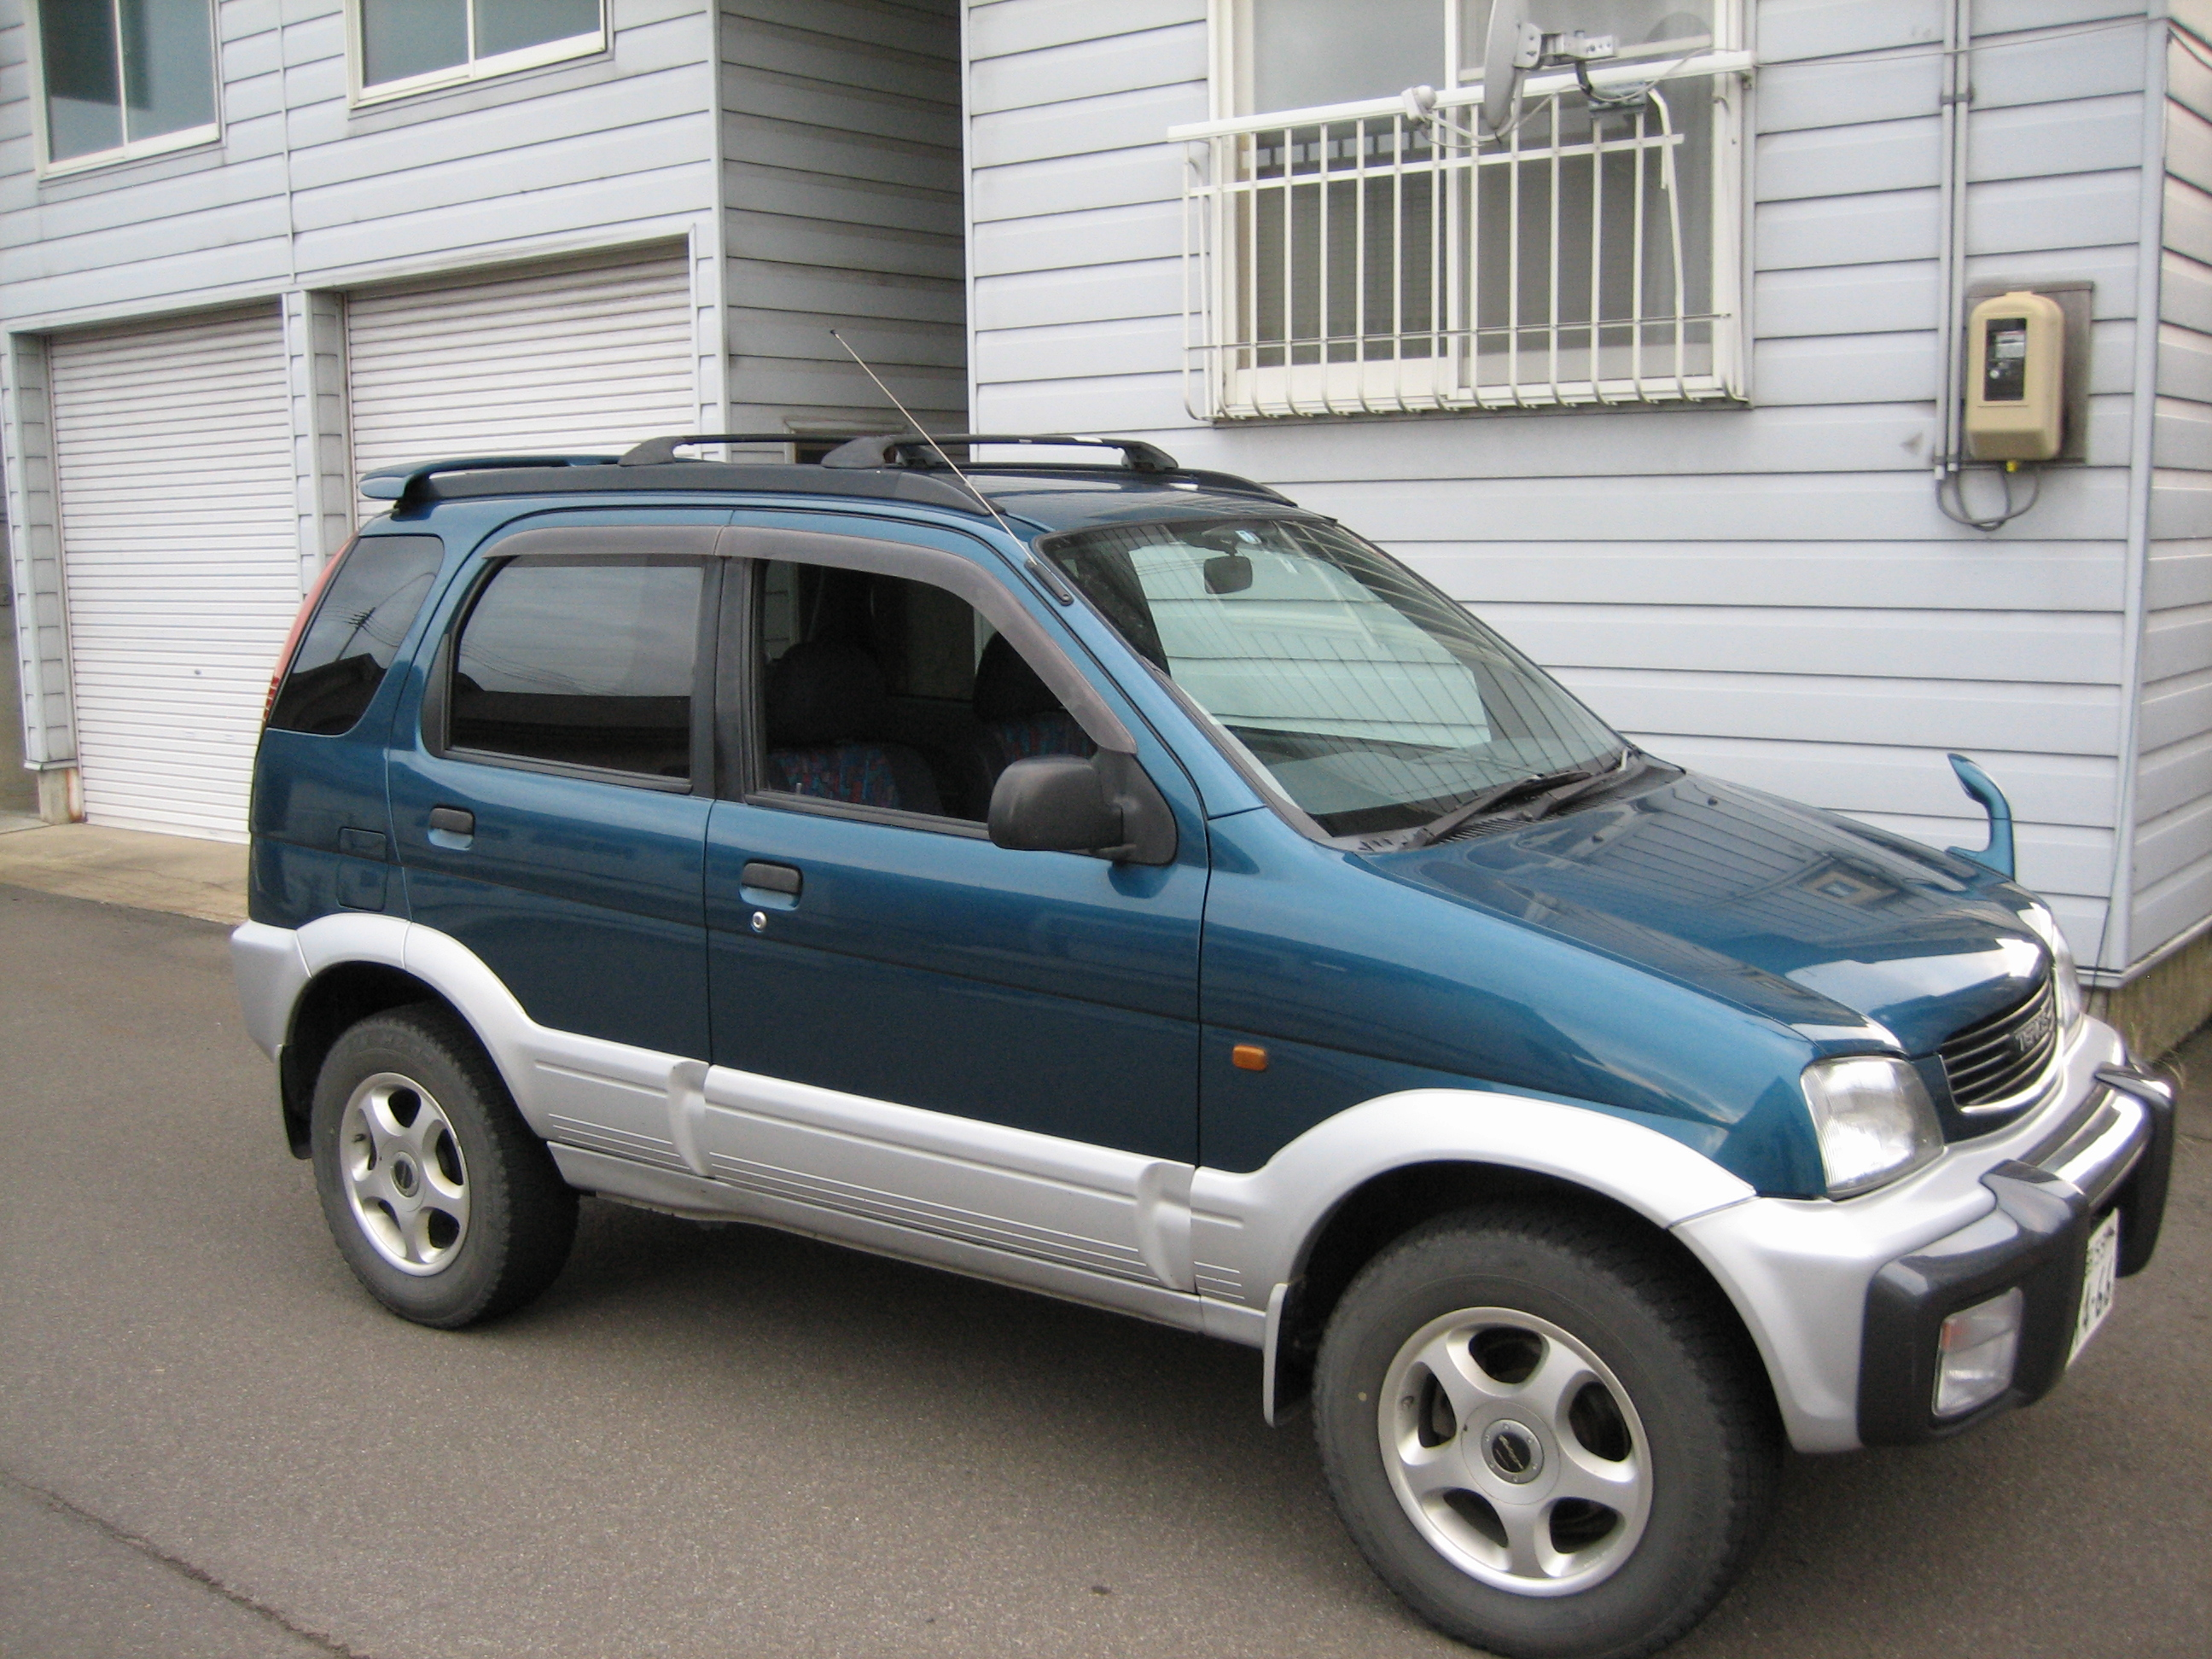 File:1999 Daihatsu Terios.jpg - Wikimedia Commons